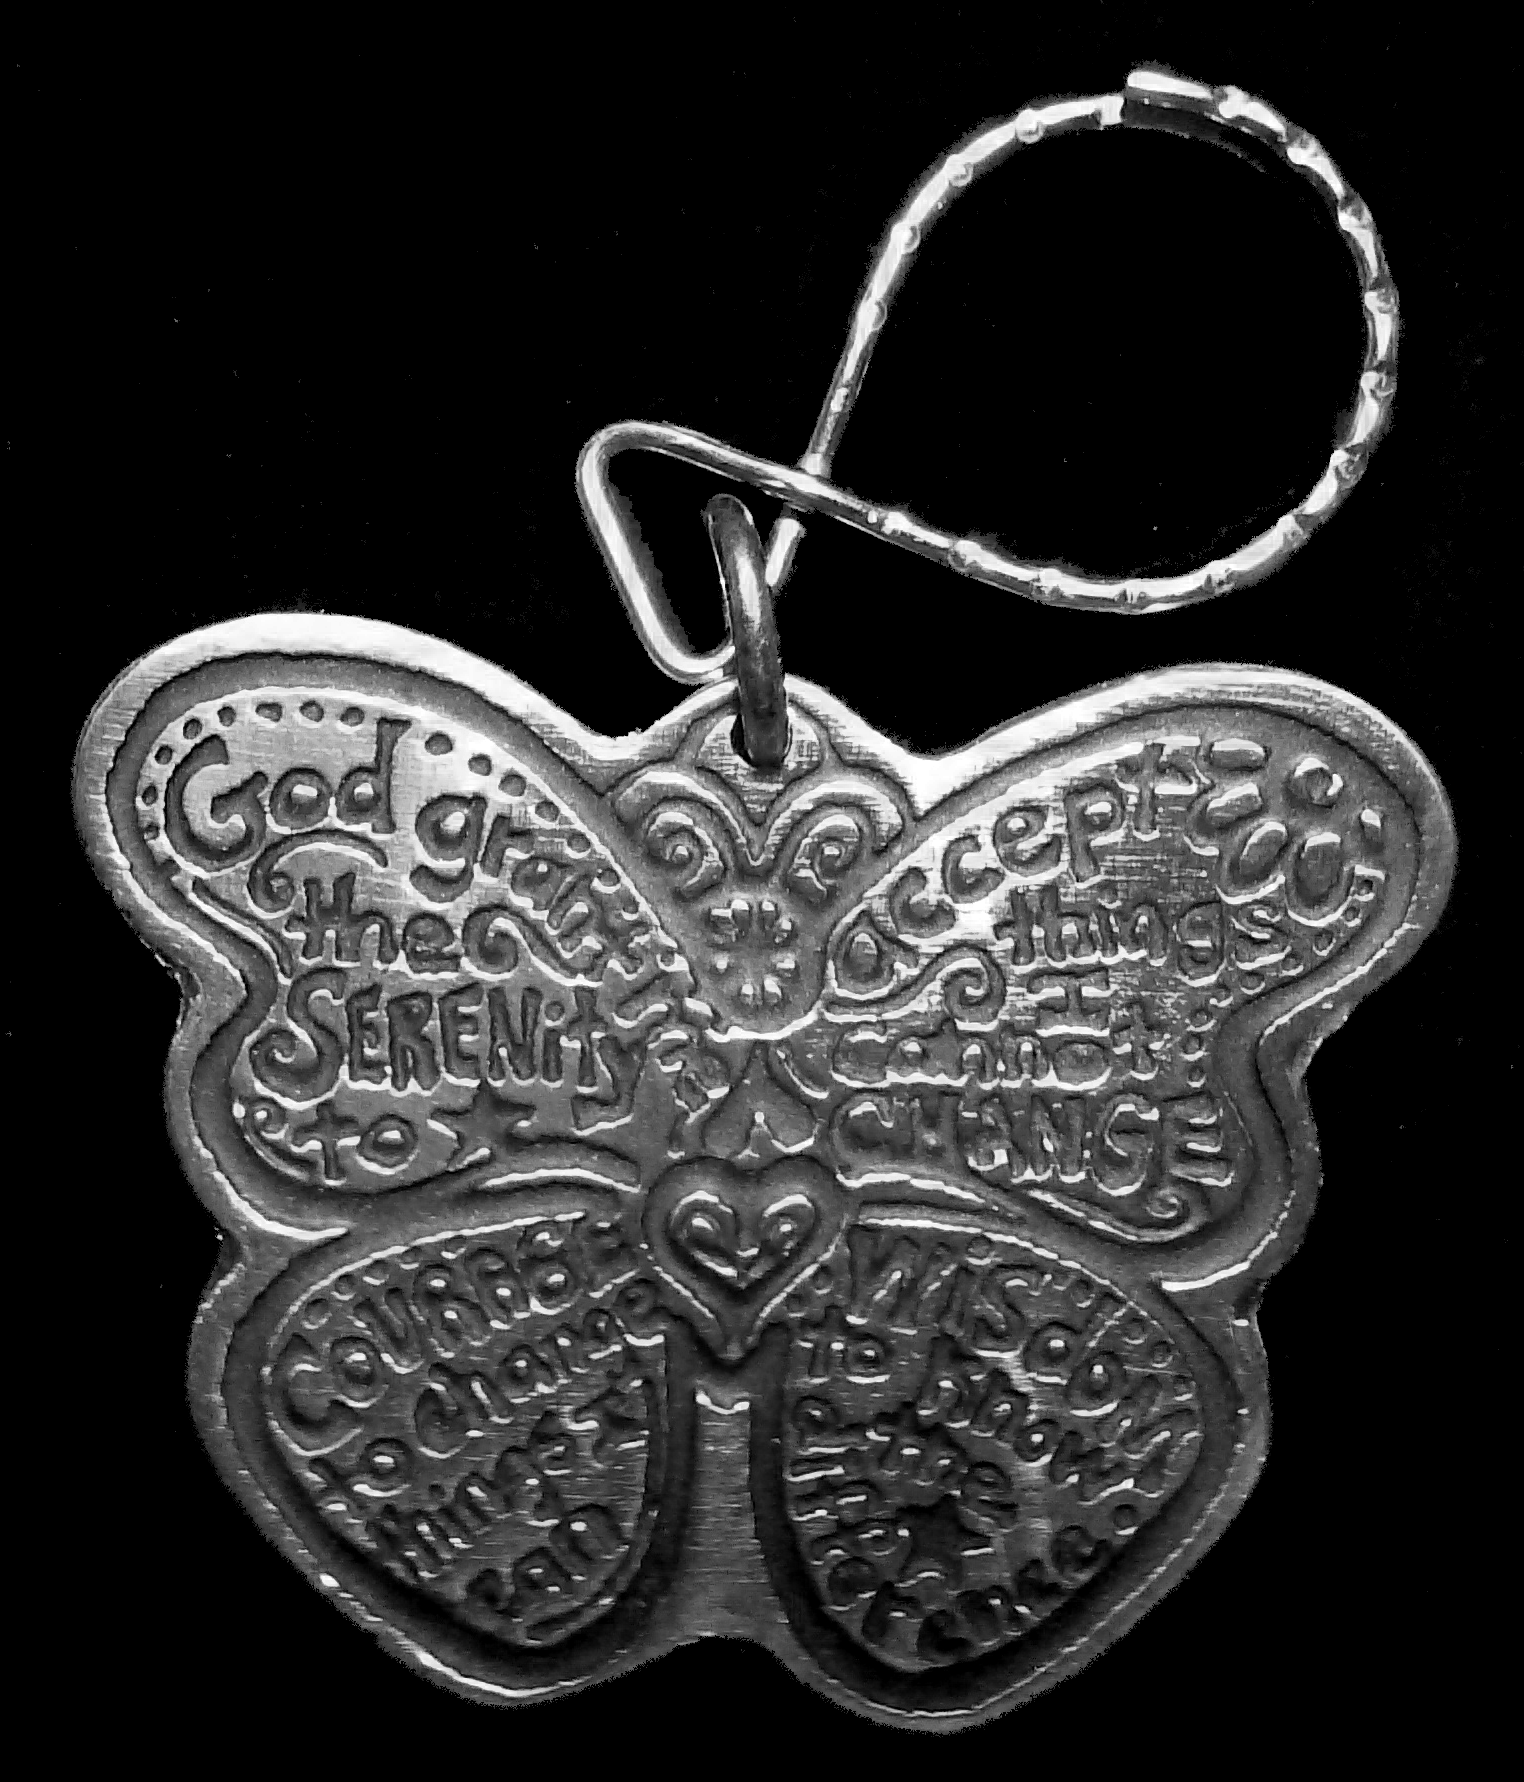 Butterfly Keychain Recovery Keychain My 12 Step Store